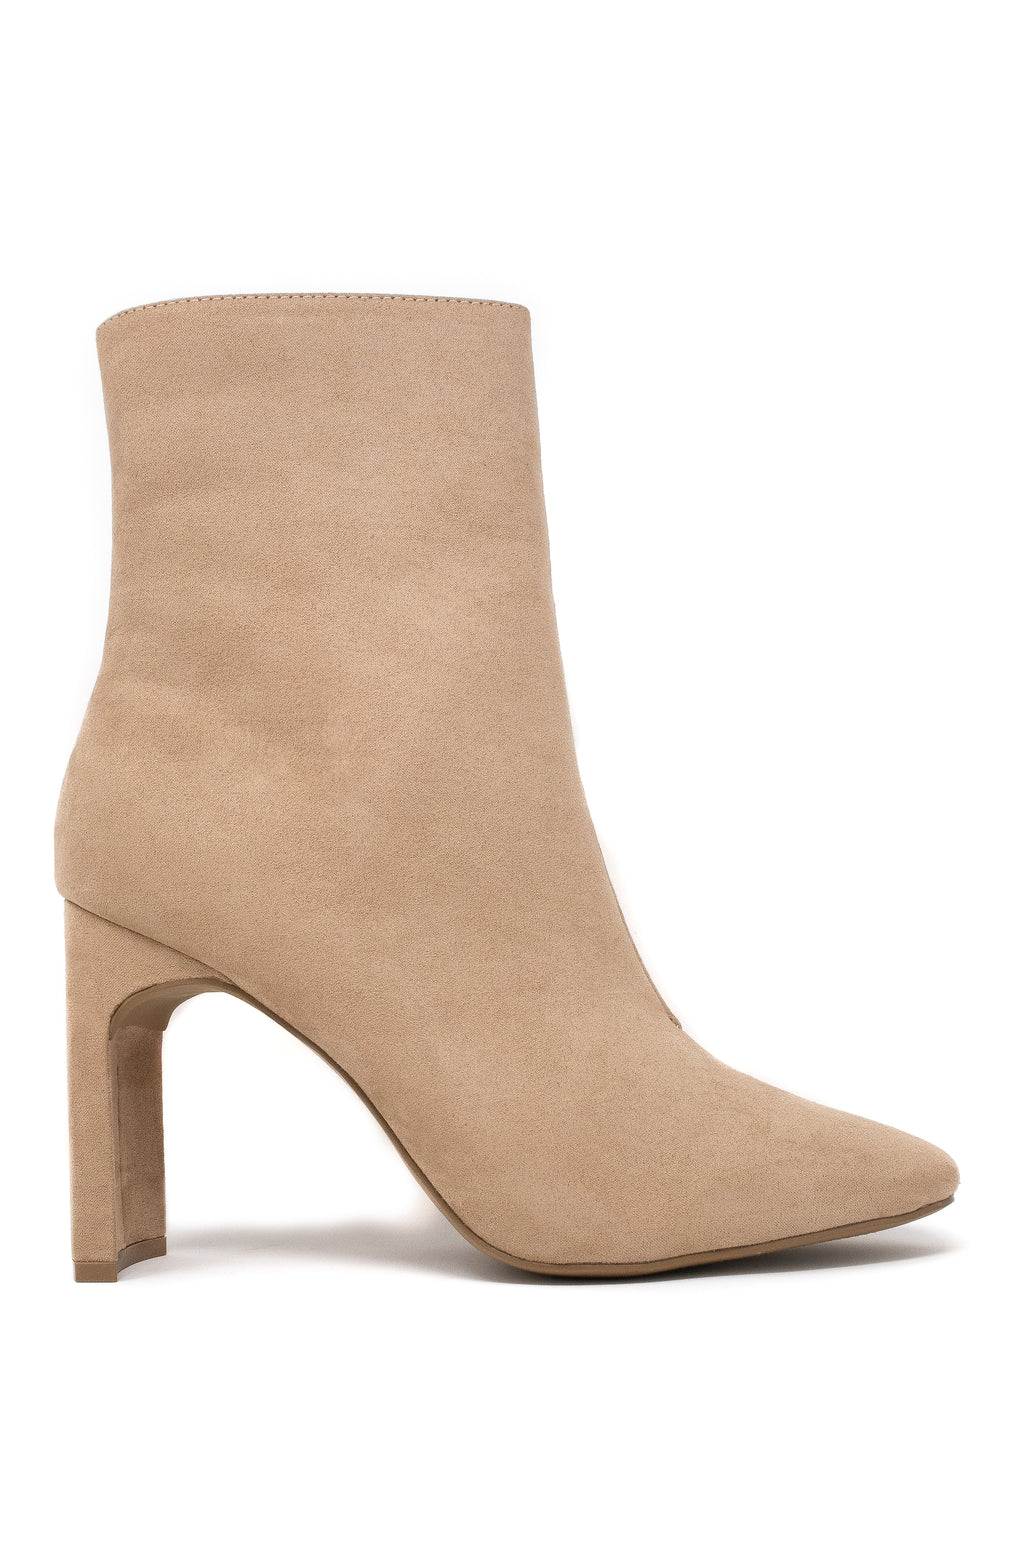 More Love - Taupe Booties